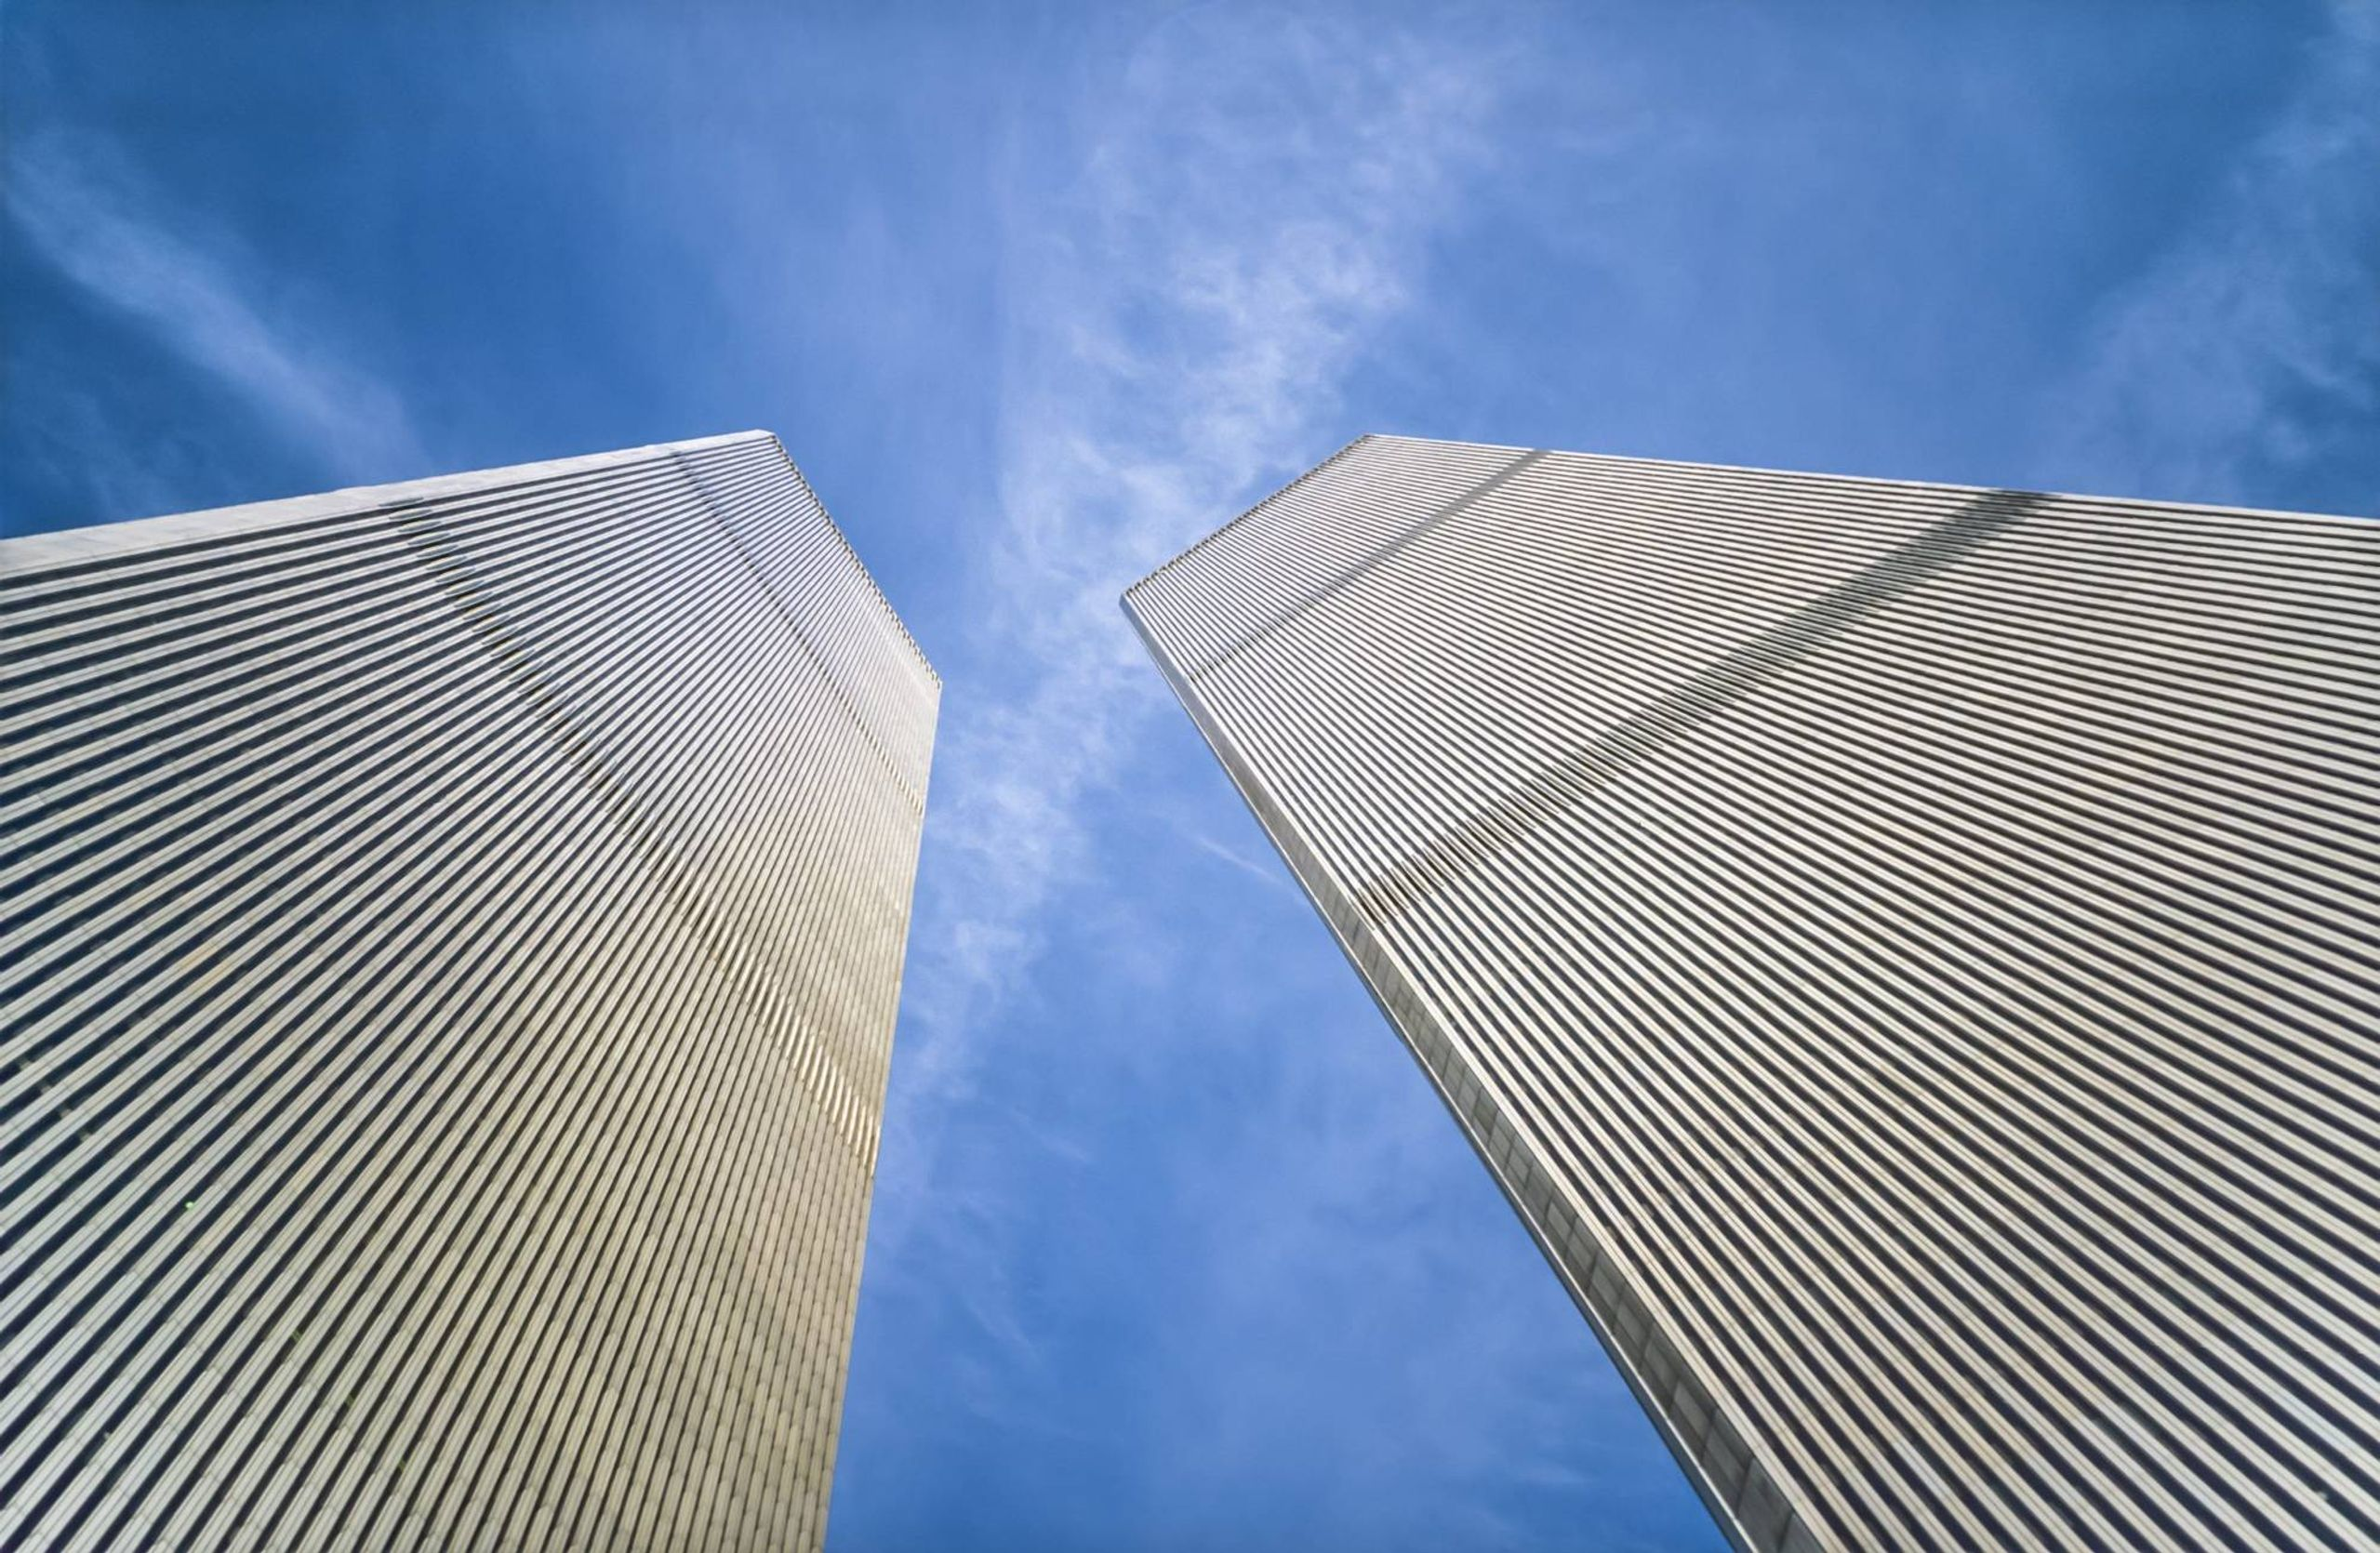 Twin Towers, September 11, where you were on 9/11